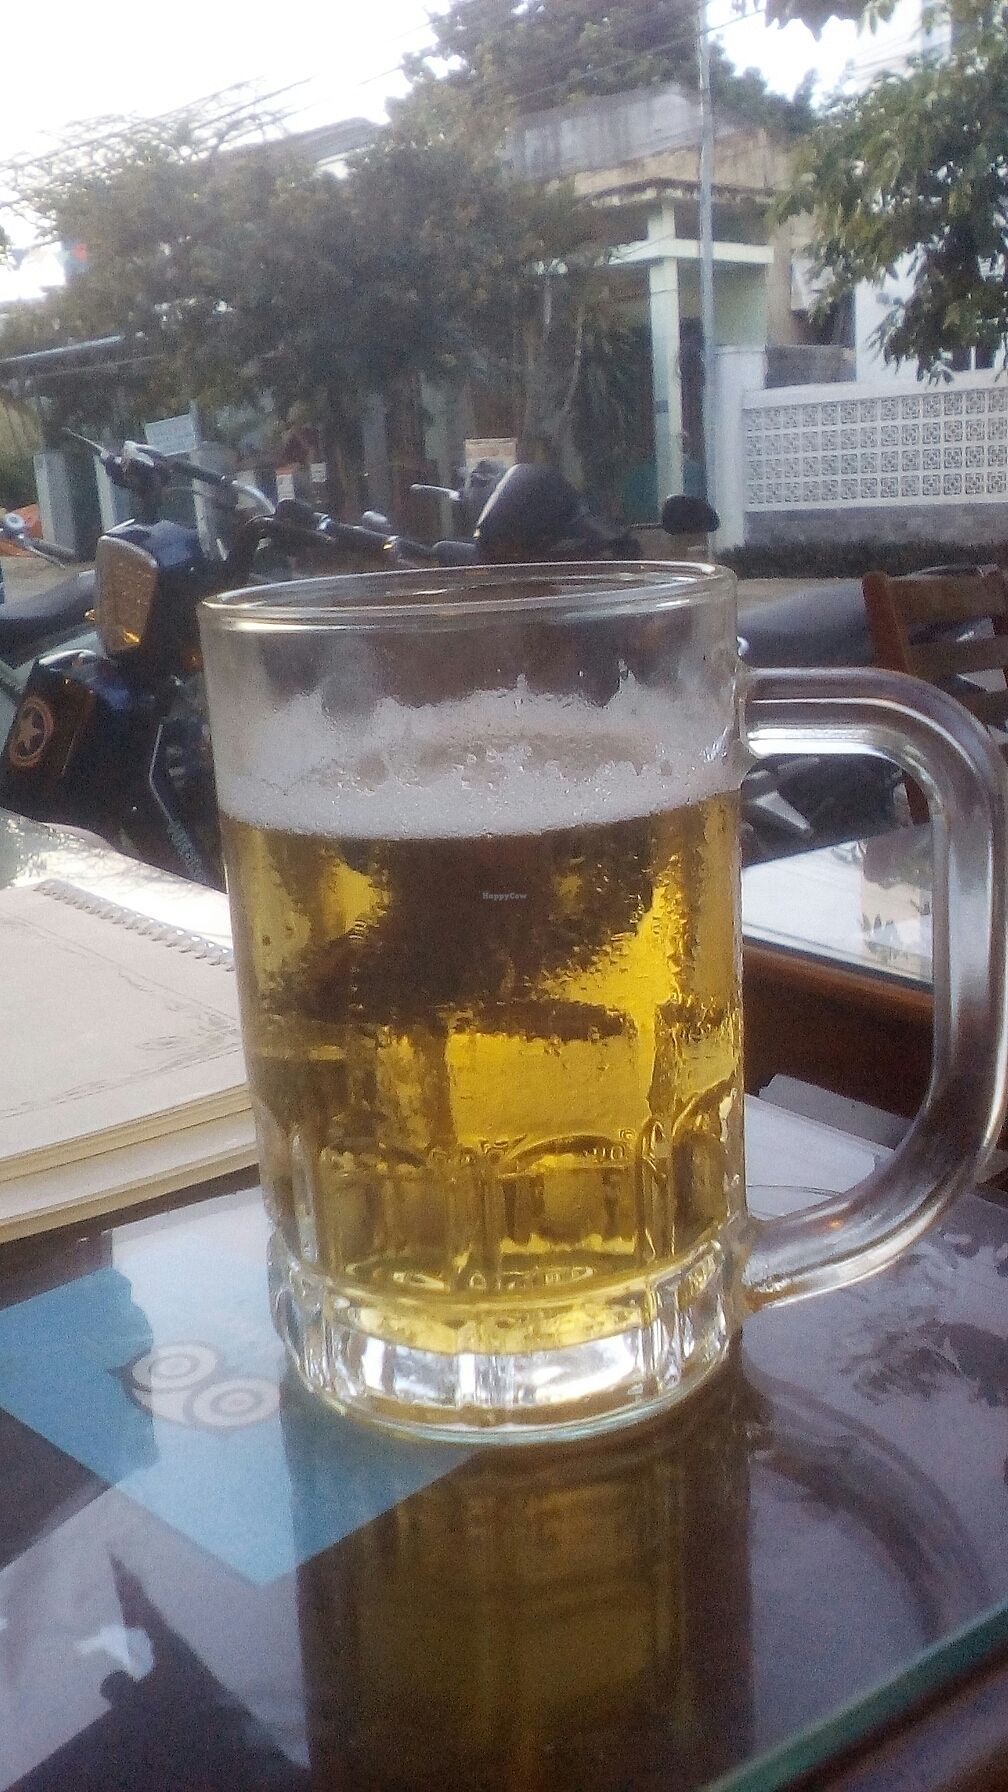 """Photo of Minh Hien 2  by <a href=""""/members/profile/turnvegan"""">turnvegan</a> <br/>Fresh beer for 5k dongs <br/> July 20, 2017  - <a href='/contact/abuse/image/83119/282420'>Report</a>"""